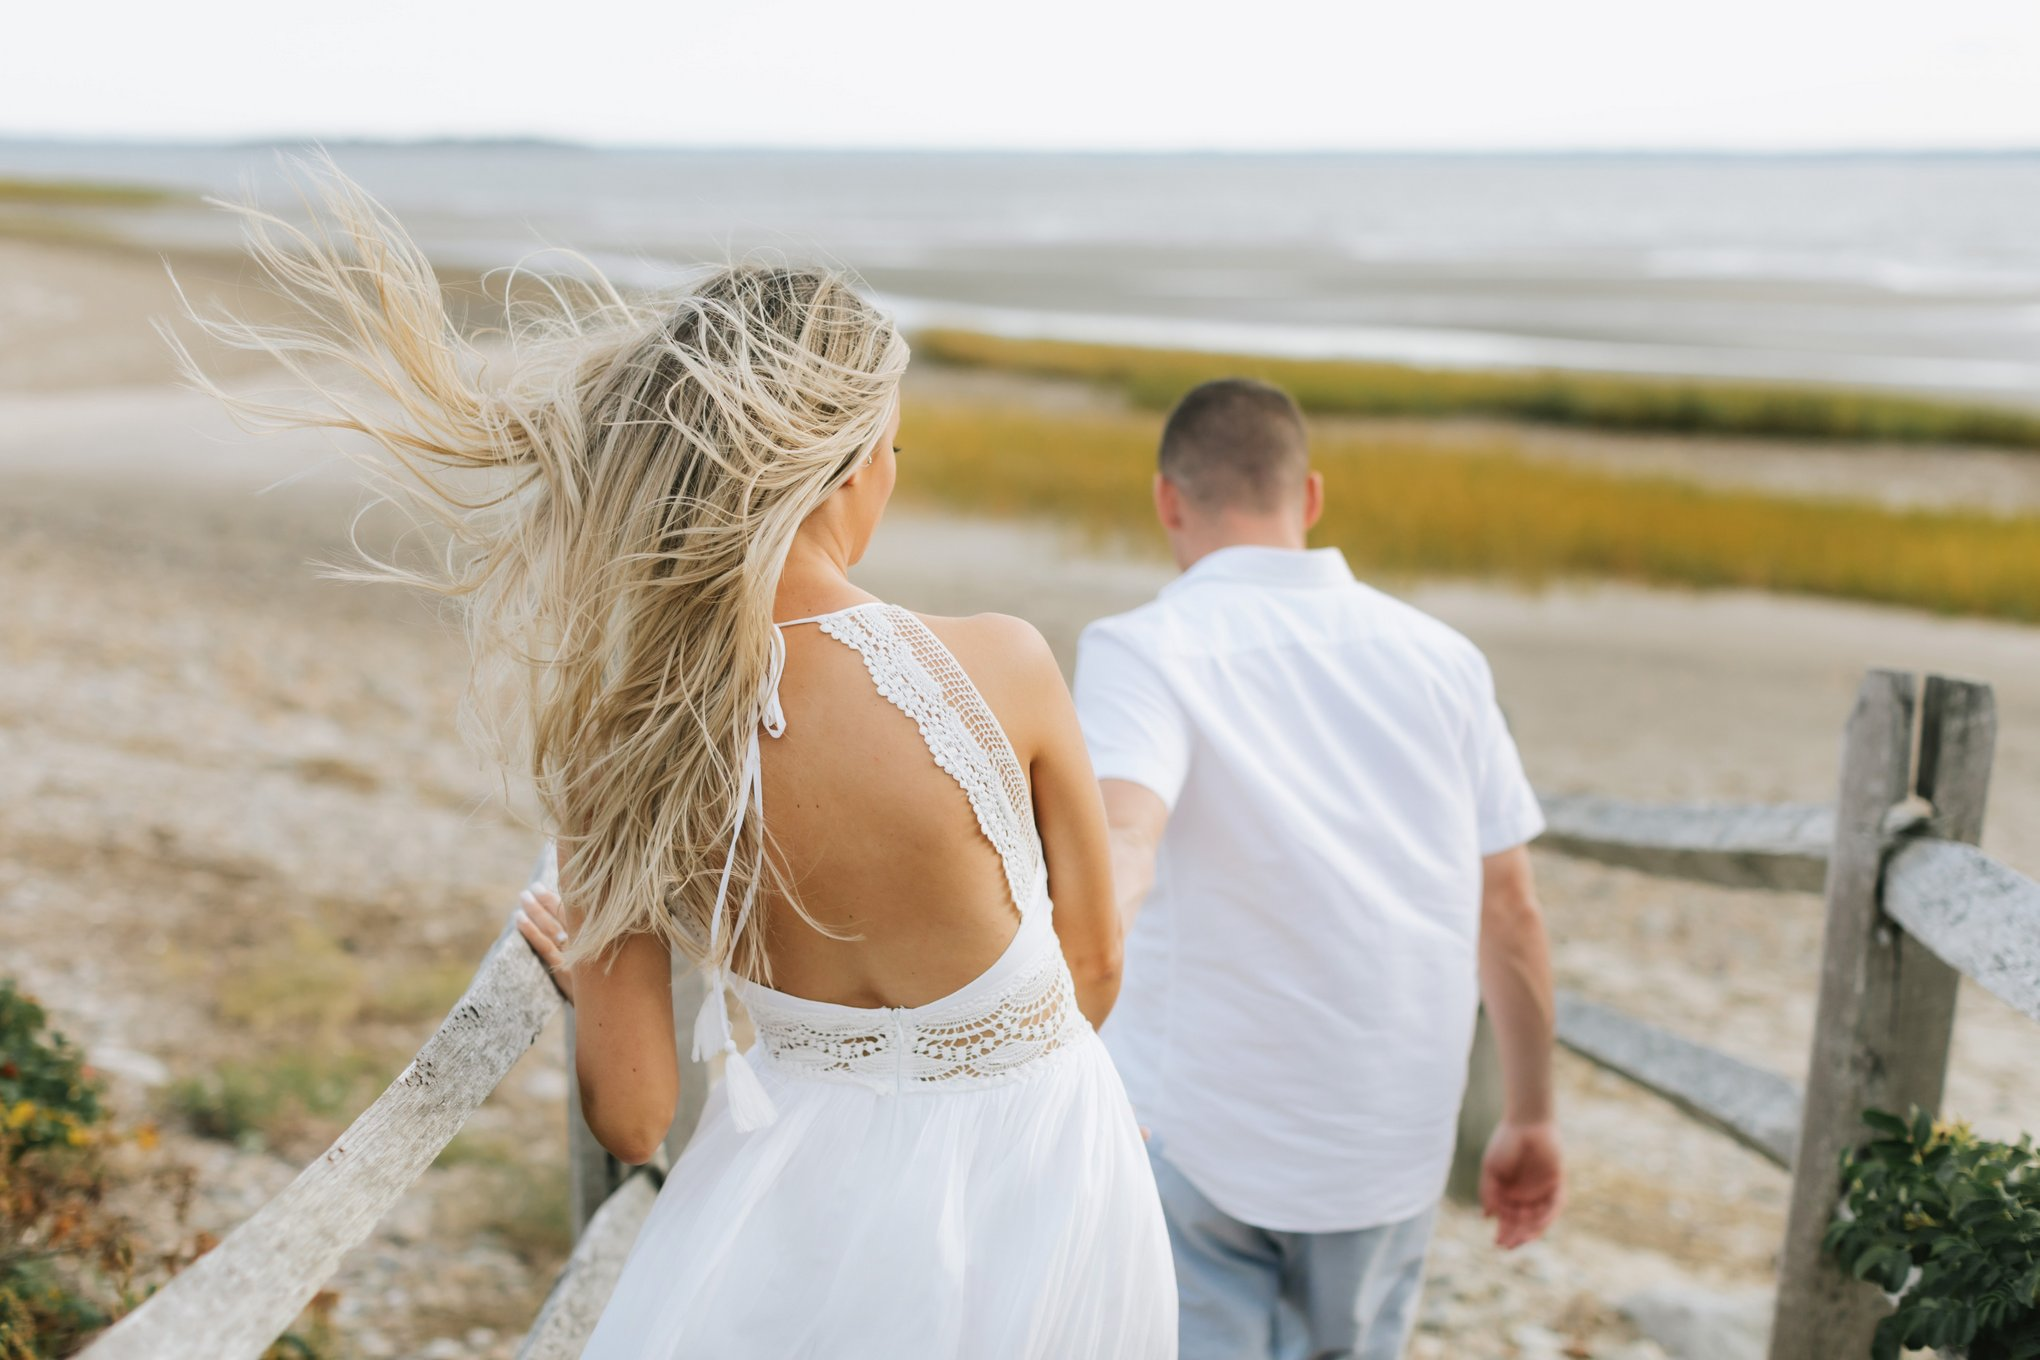 Duxbury-Beach-Engagement-10.JPG